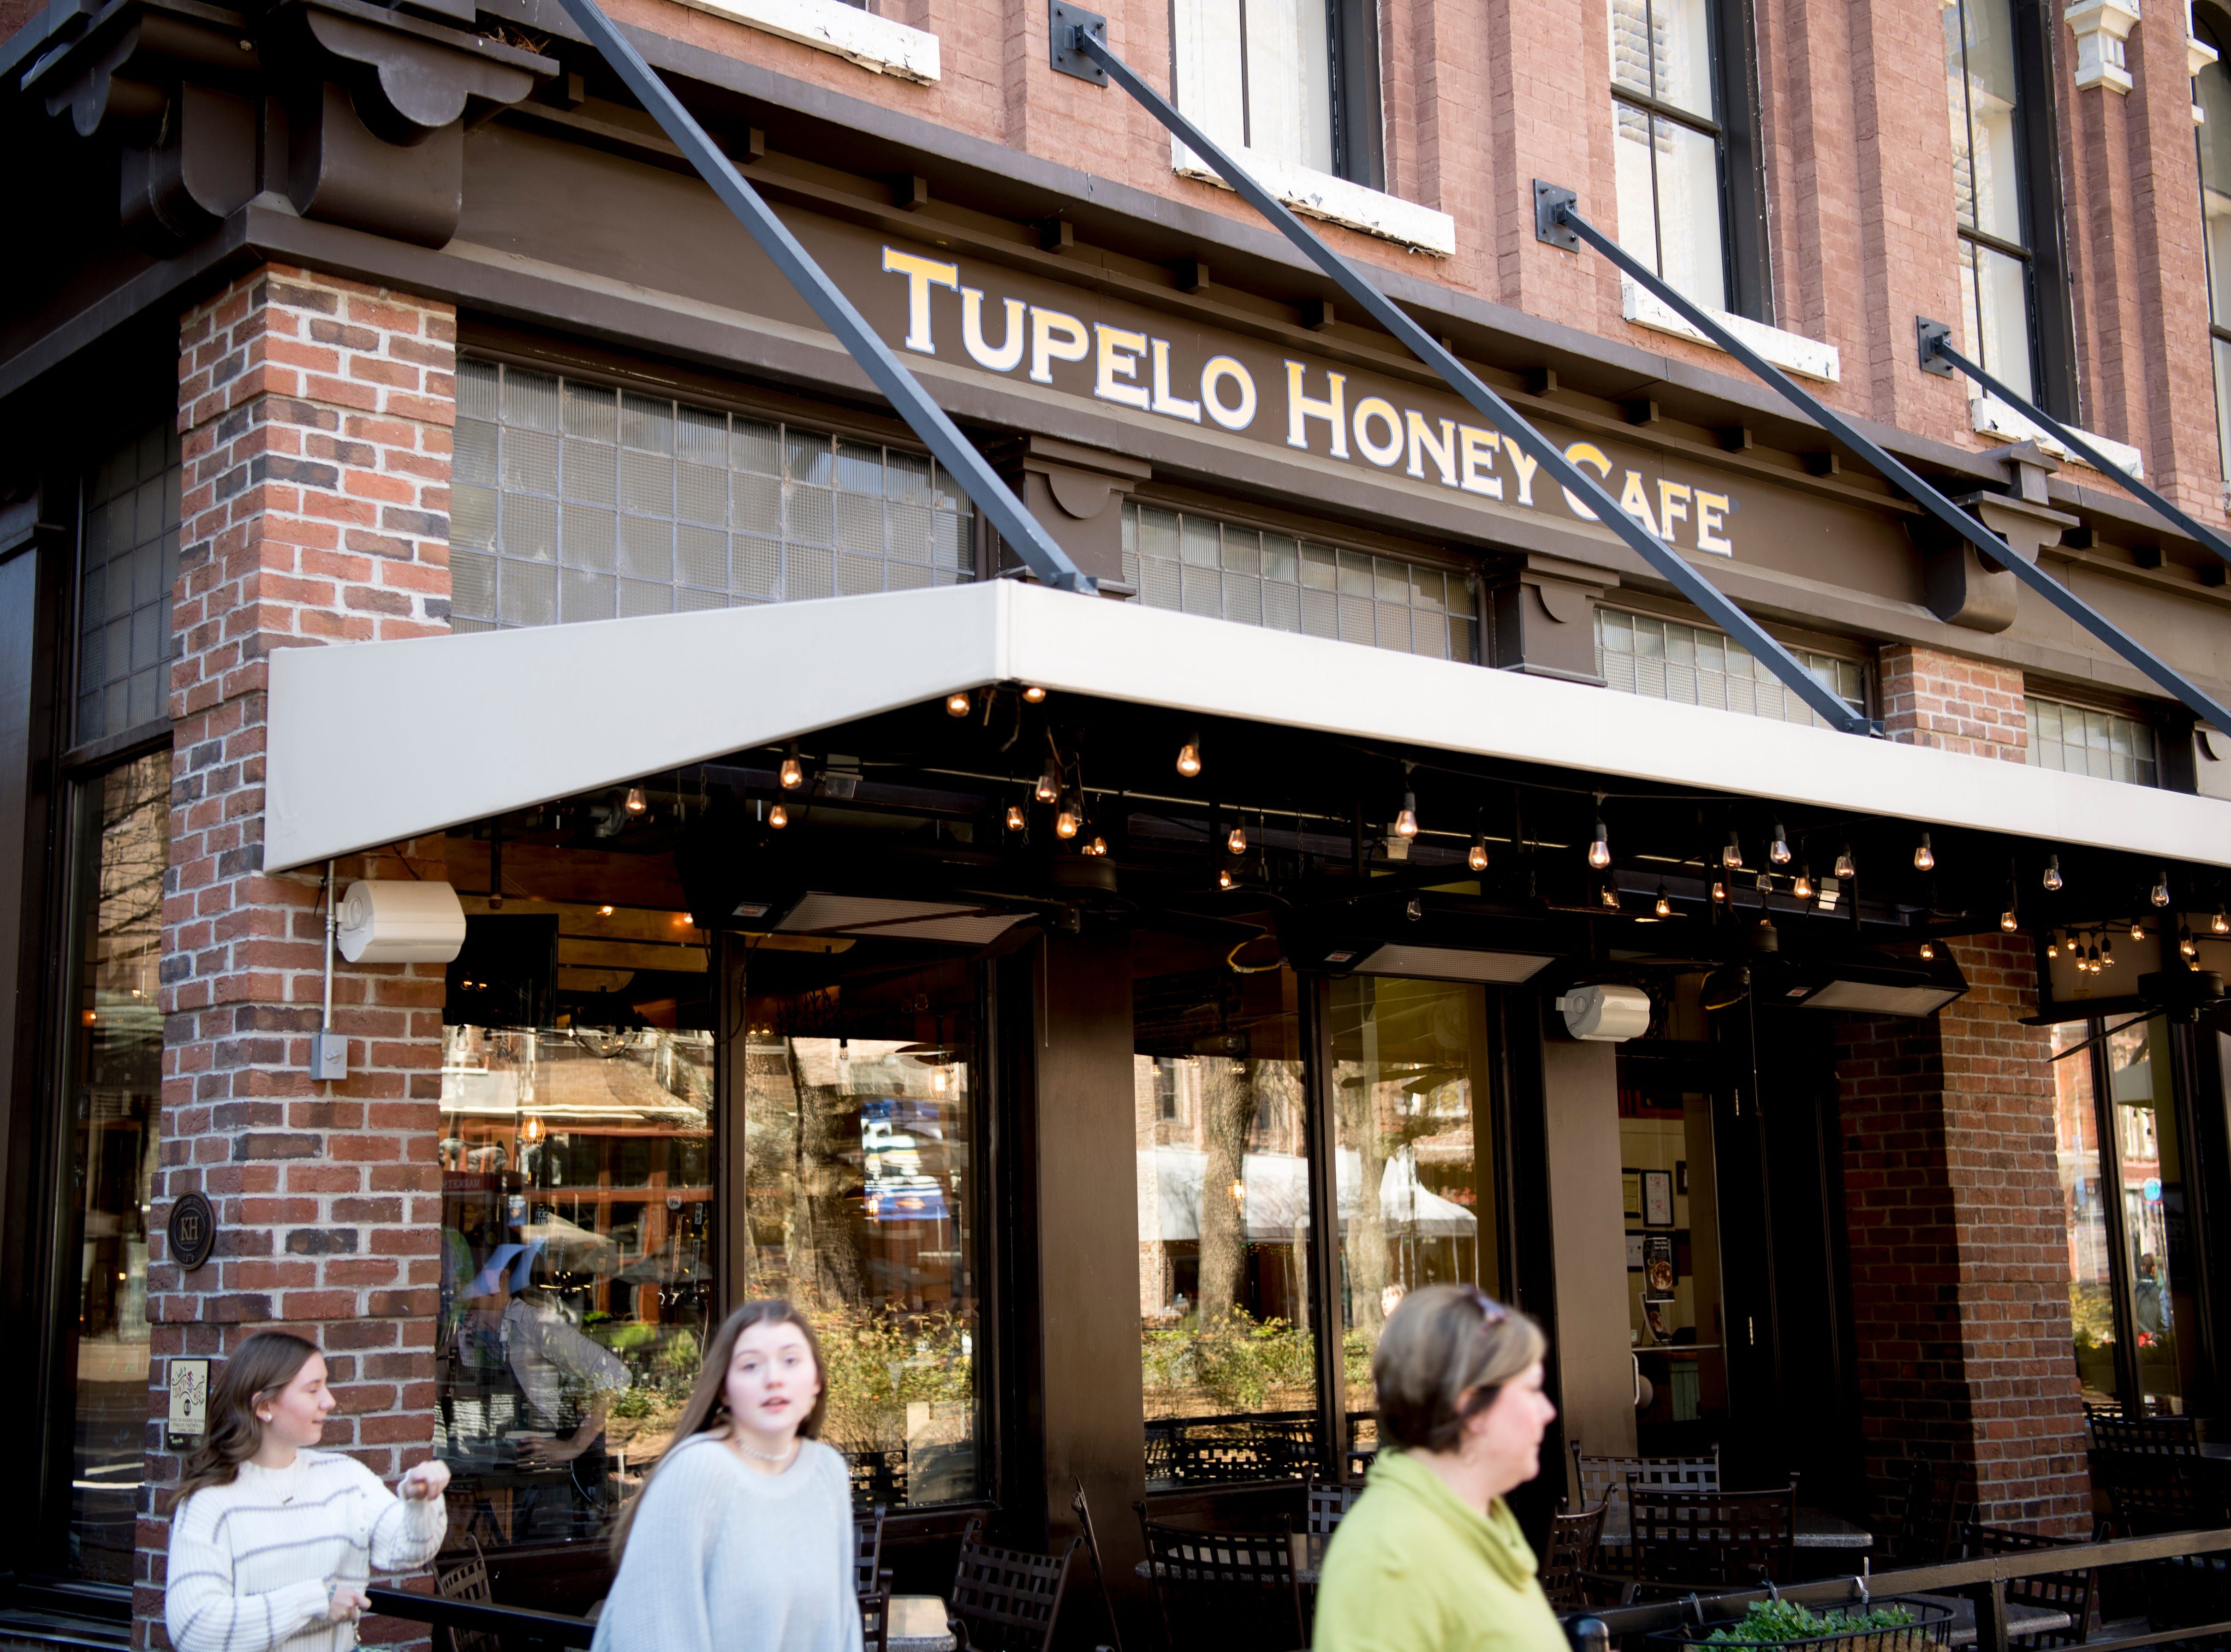 Tupelo Honey Cafe on the southwest corner of Market Square in downtown Knoxville, Tennessee on Monday, March 18, 2019.